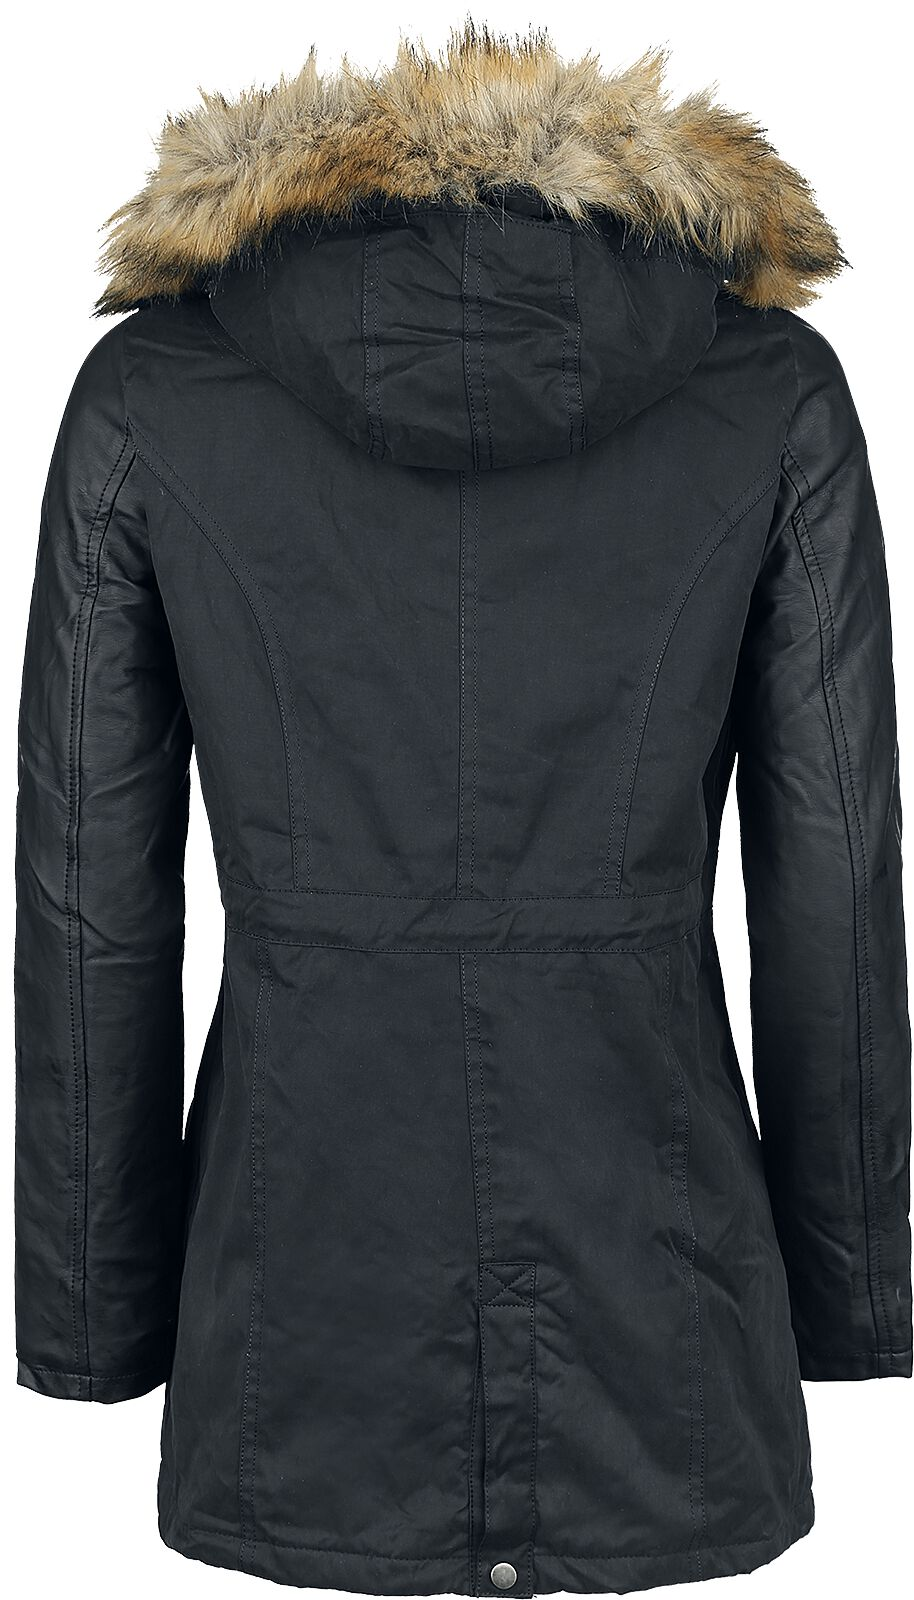 09ff45b8 Urban Classics. Ladies Imitation Leather Sleeve Parka. Vinterjakke